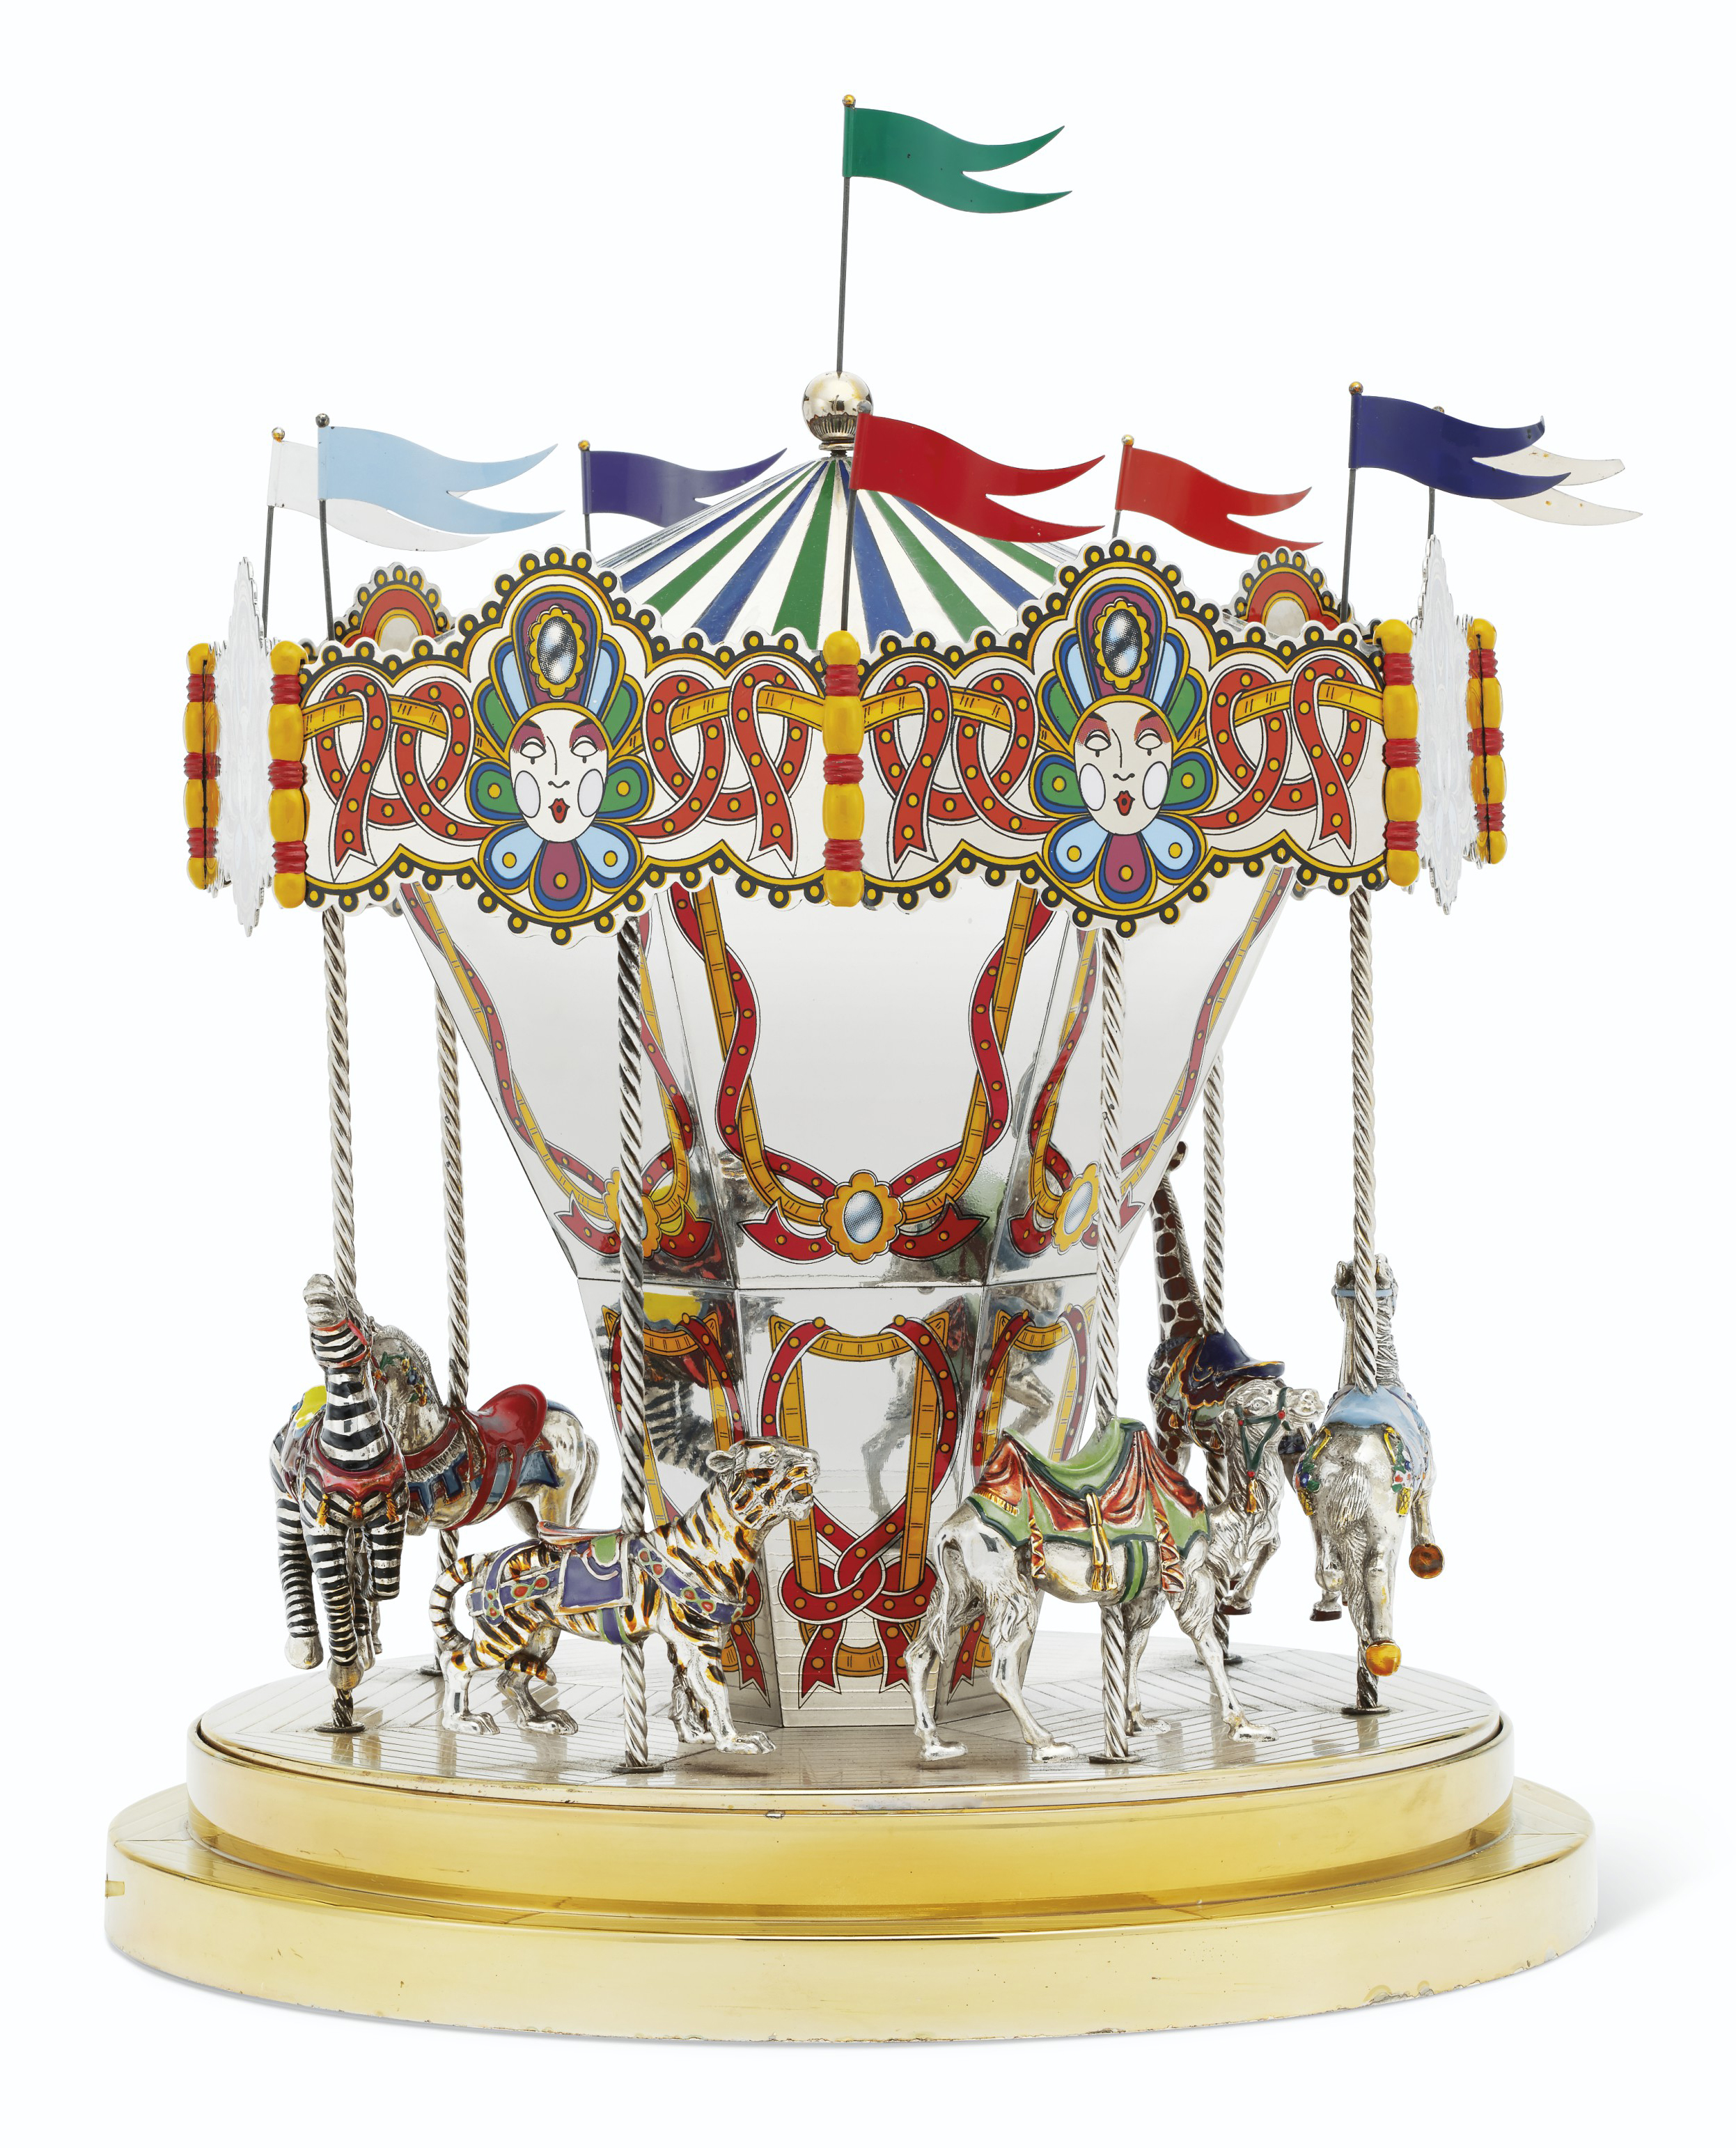 AN AMERICAN PARCEL-GILT SILVER AND ENAMEL MUSICAL CAROUSEL